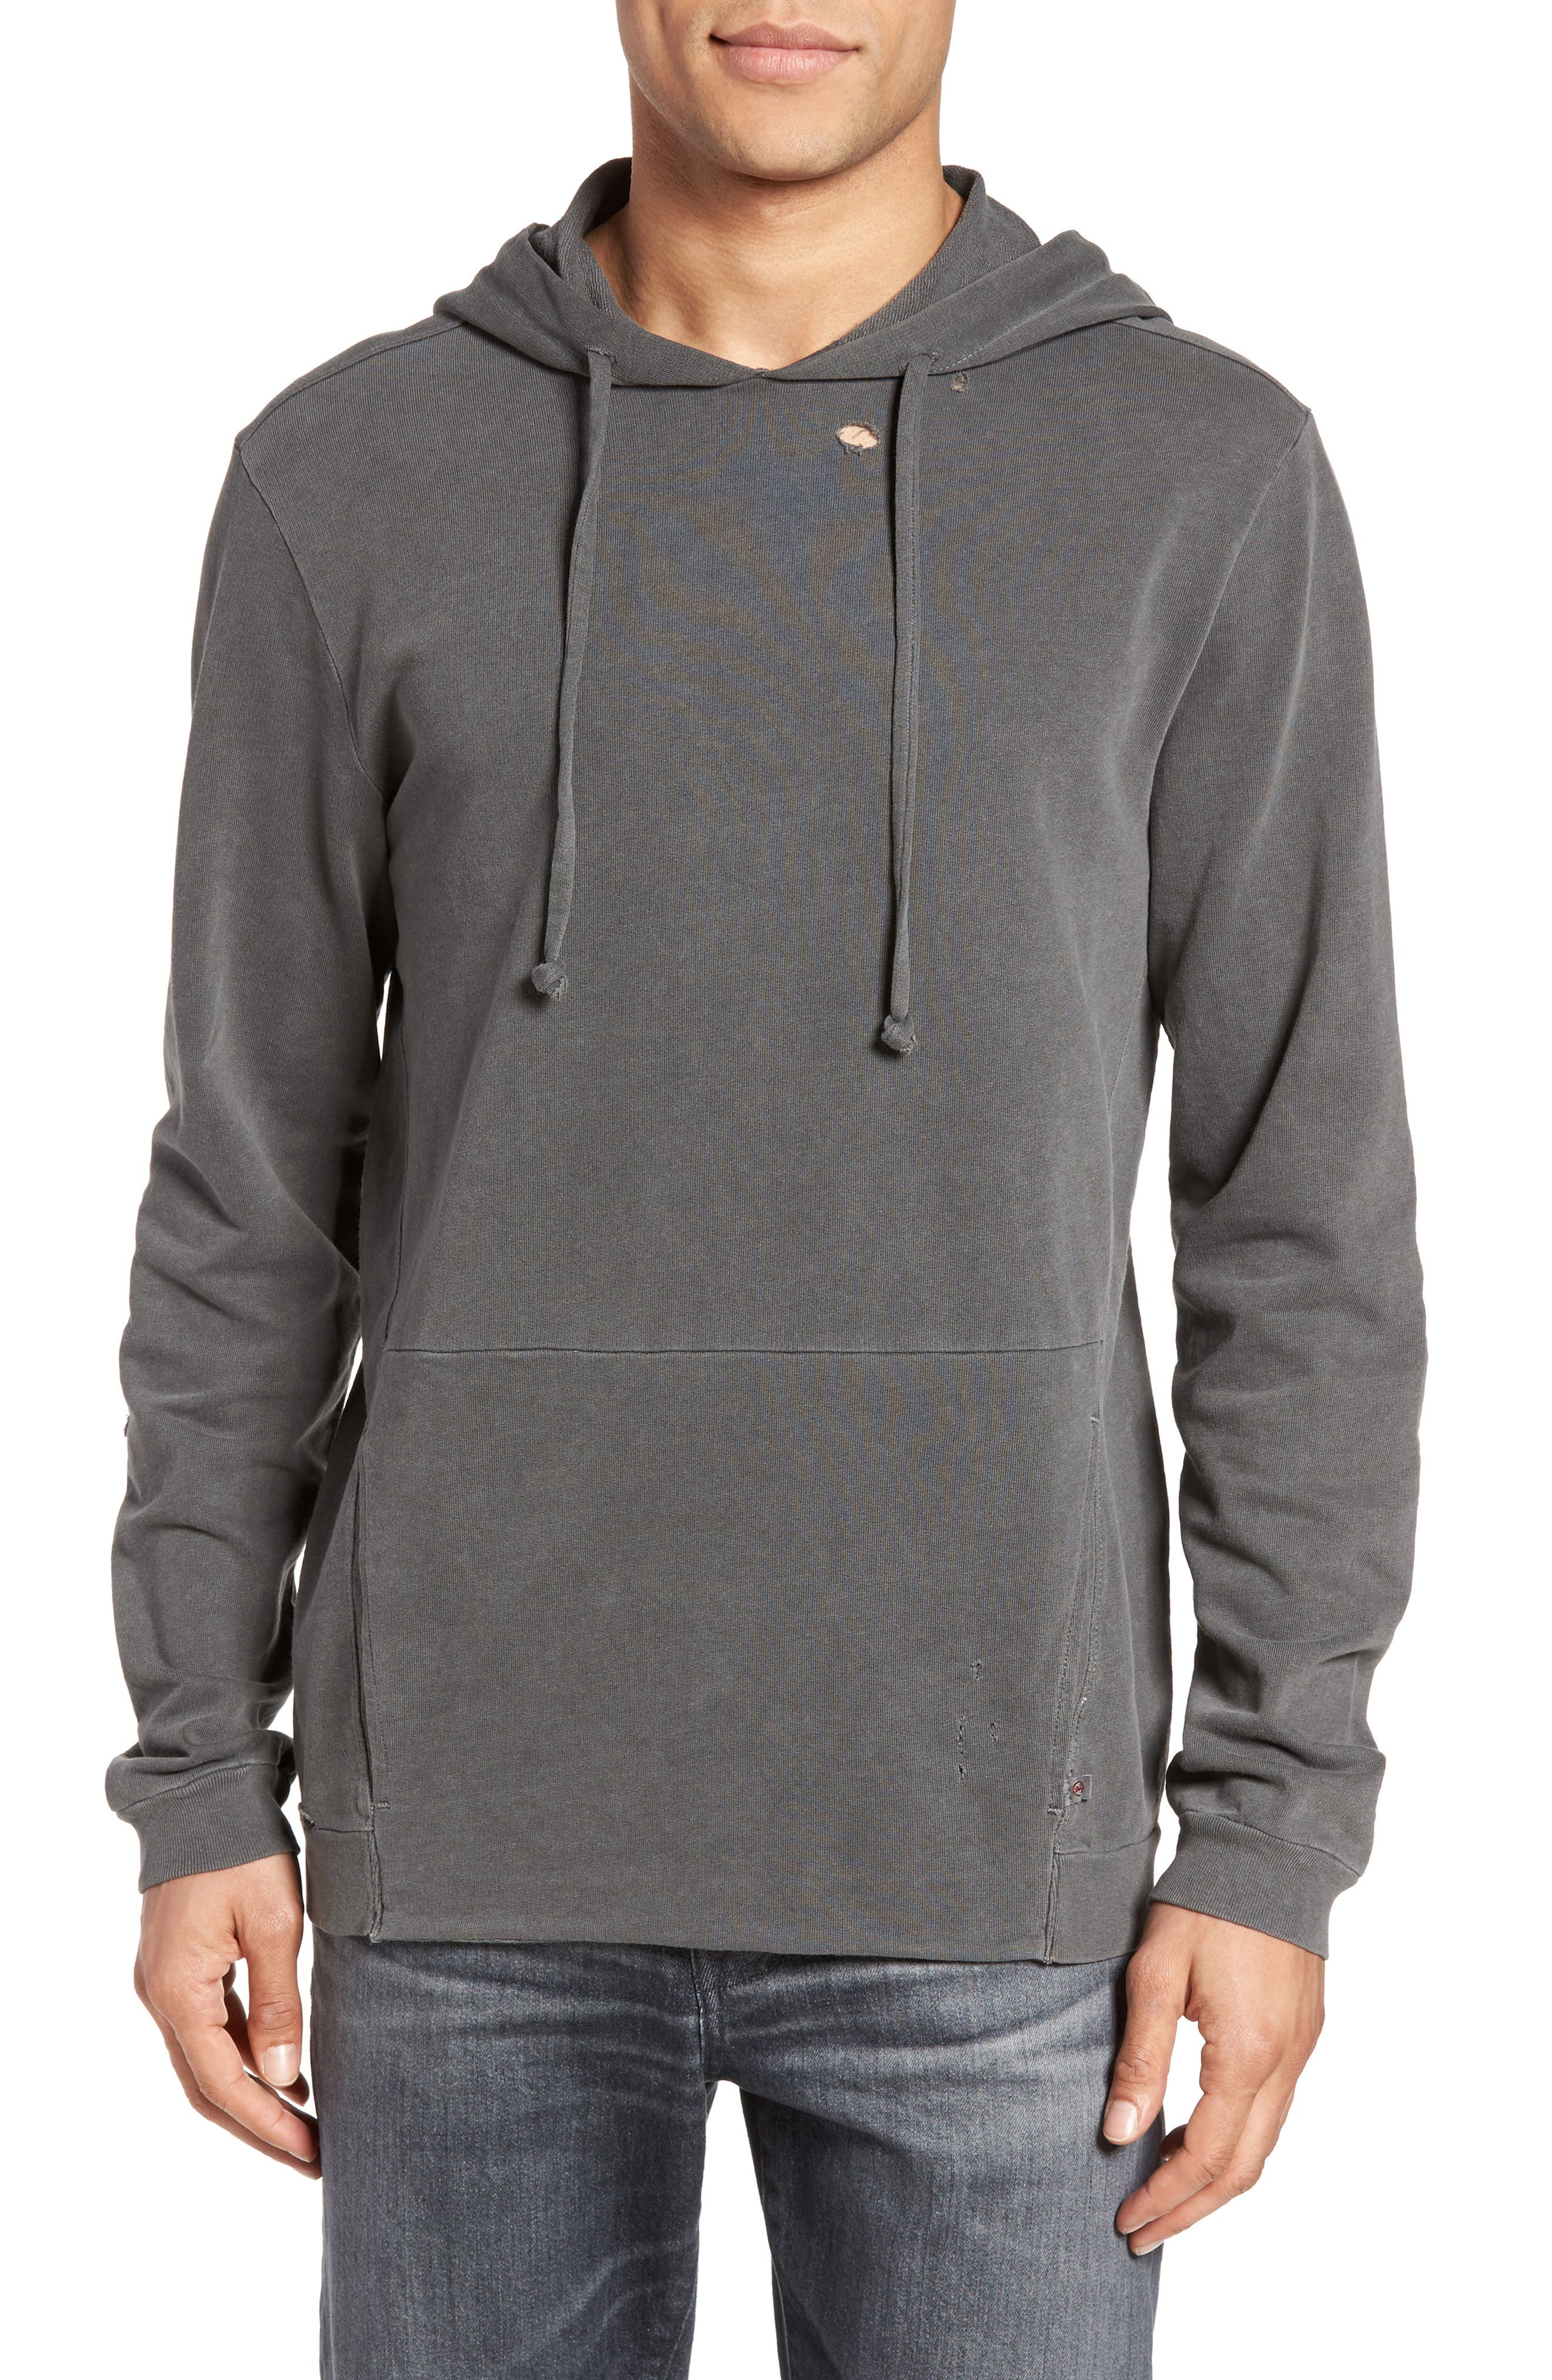 Eloi Pullover Hoodie,                             Main thumbnail 1, color,                             022